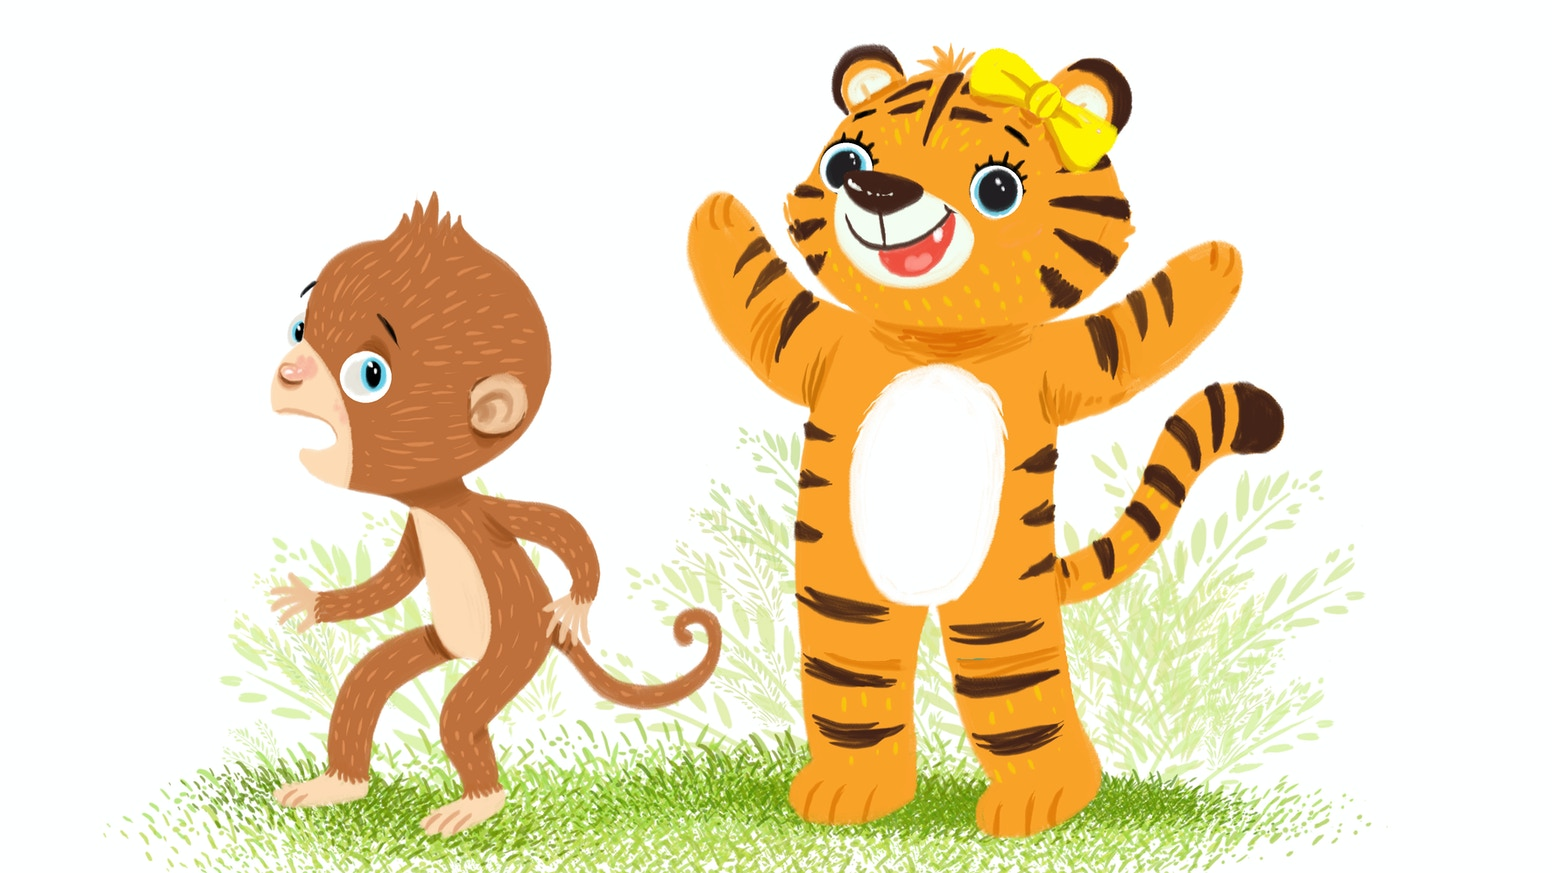 Little Linguists' Library are the picture books that allow you and your child to learn a foreign language together.